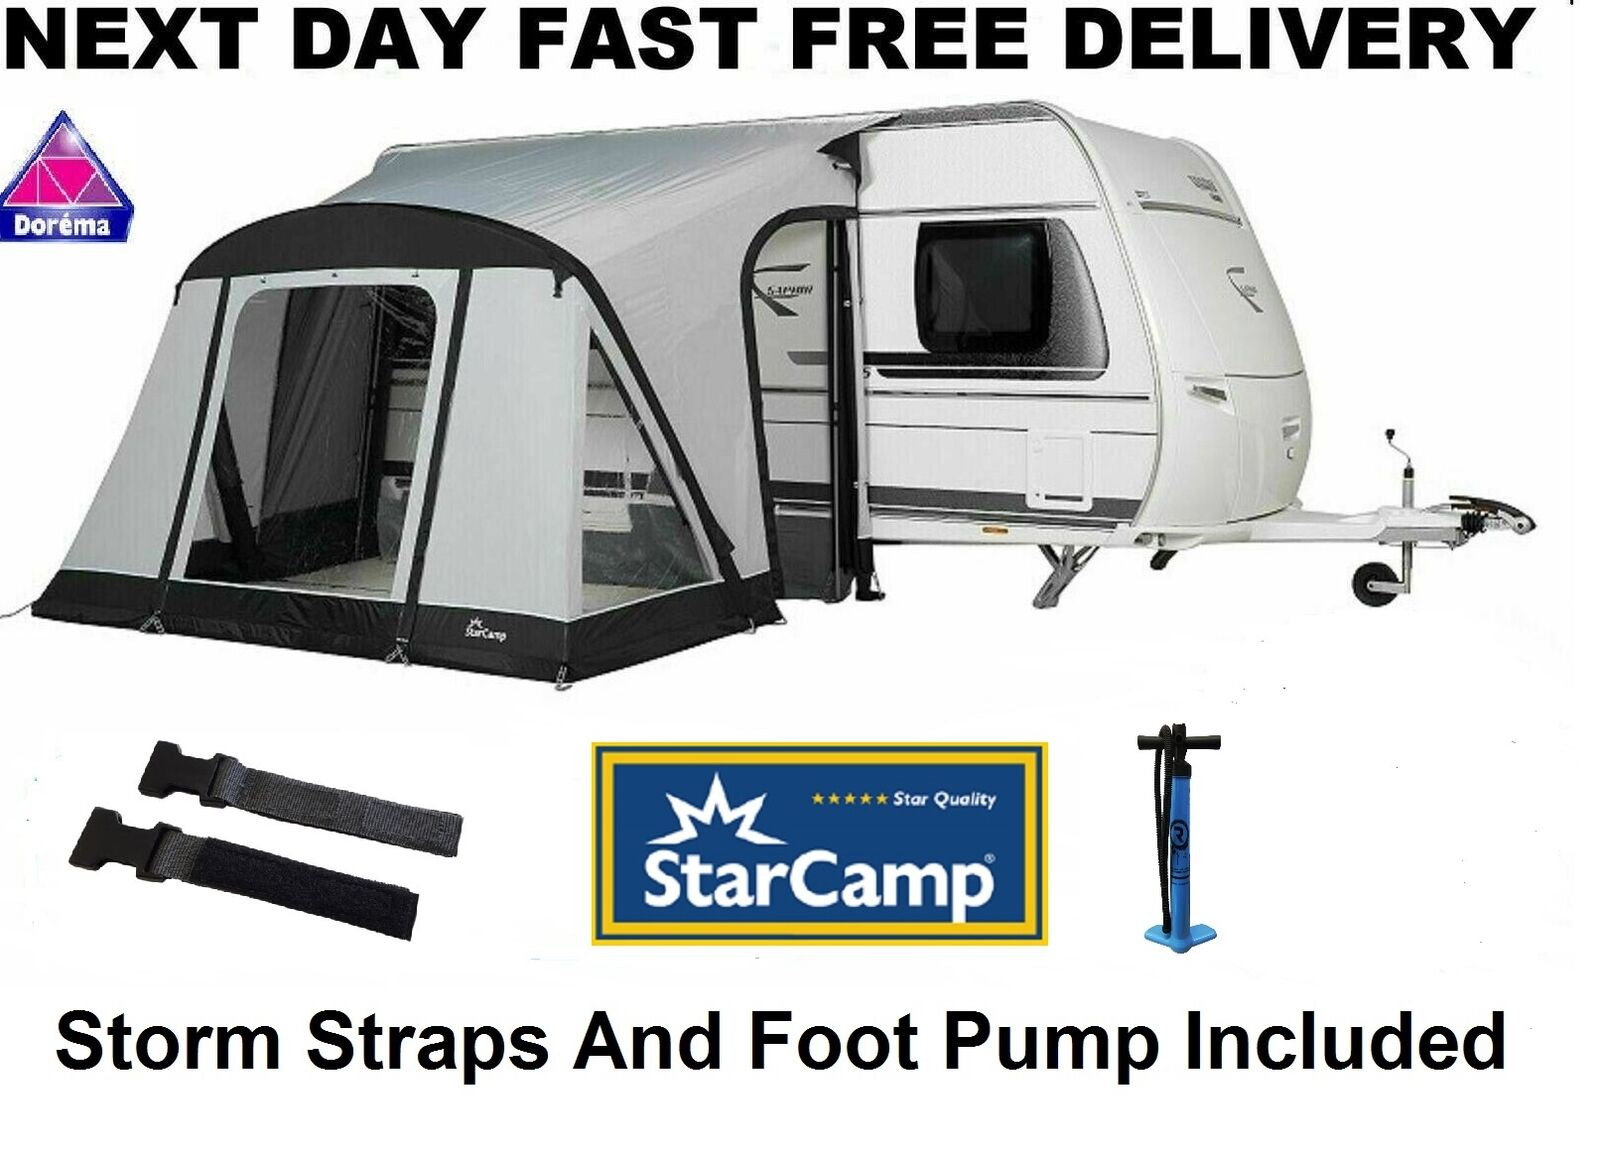 Dorema Starcamp Quick & Easy 325 AIR Inflatable Porch ...